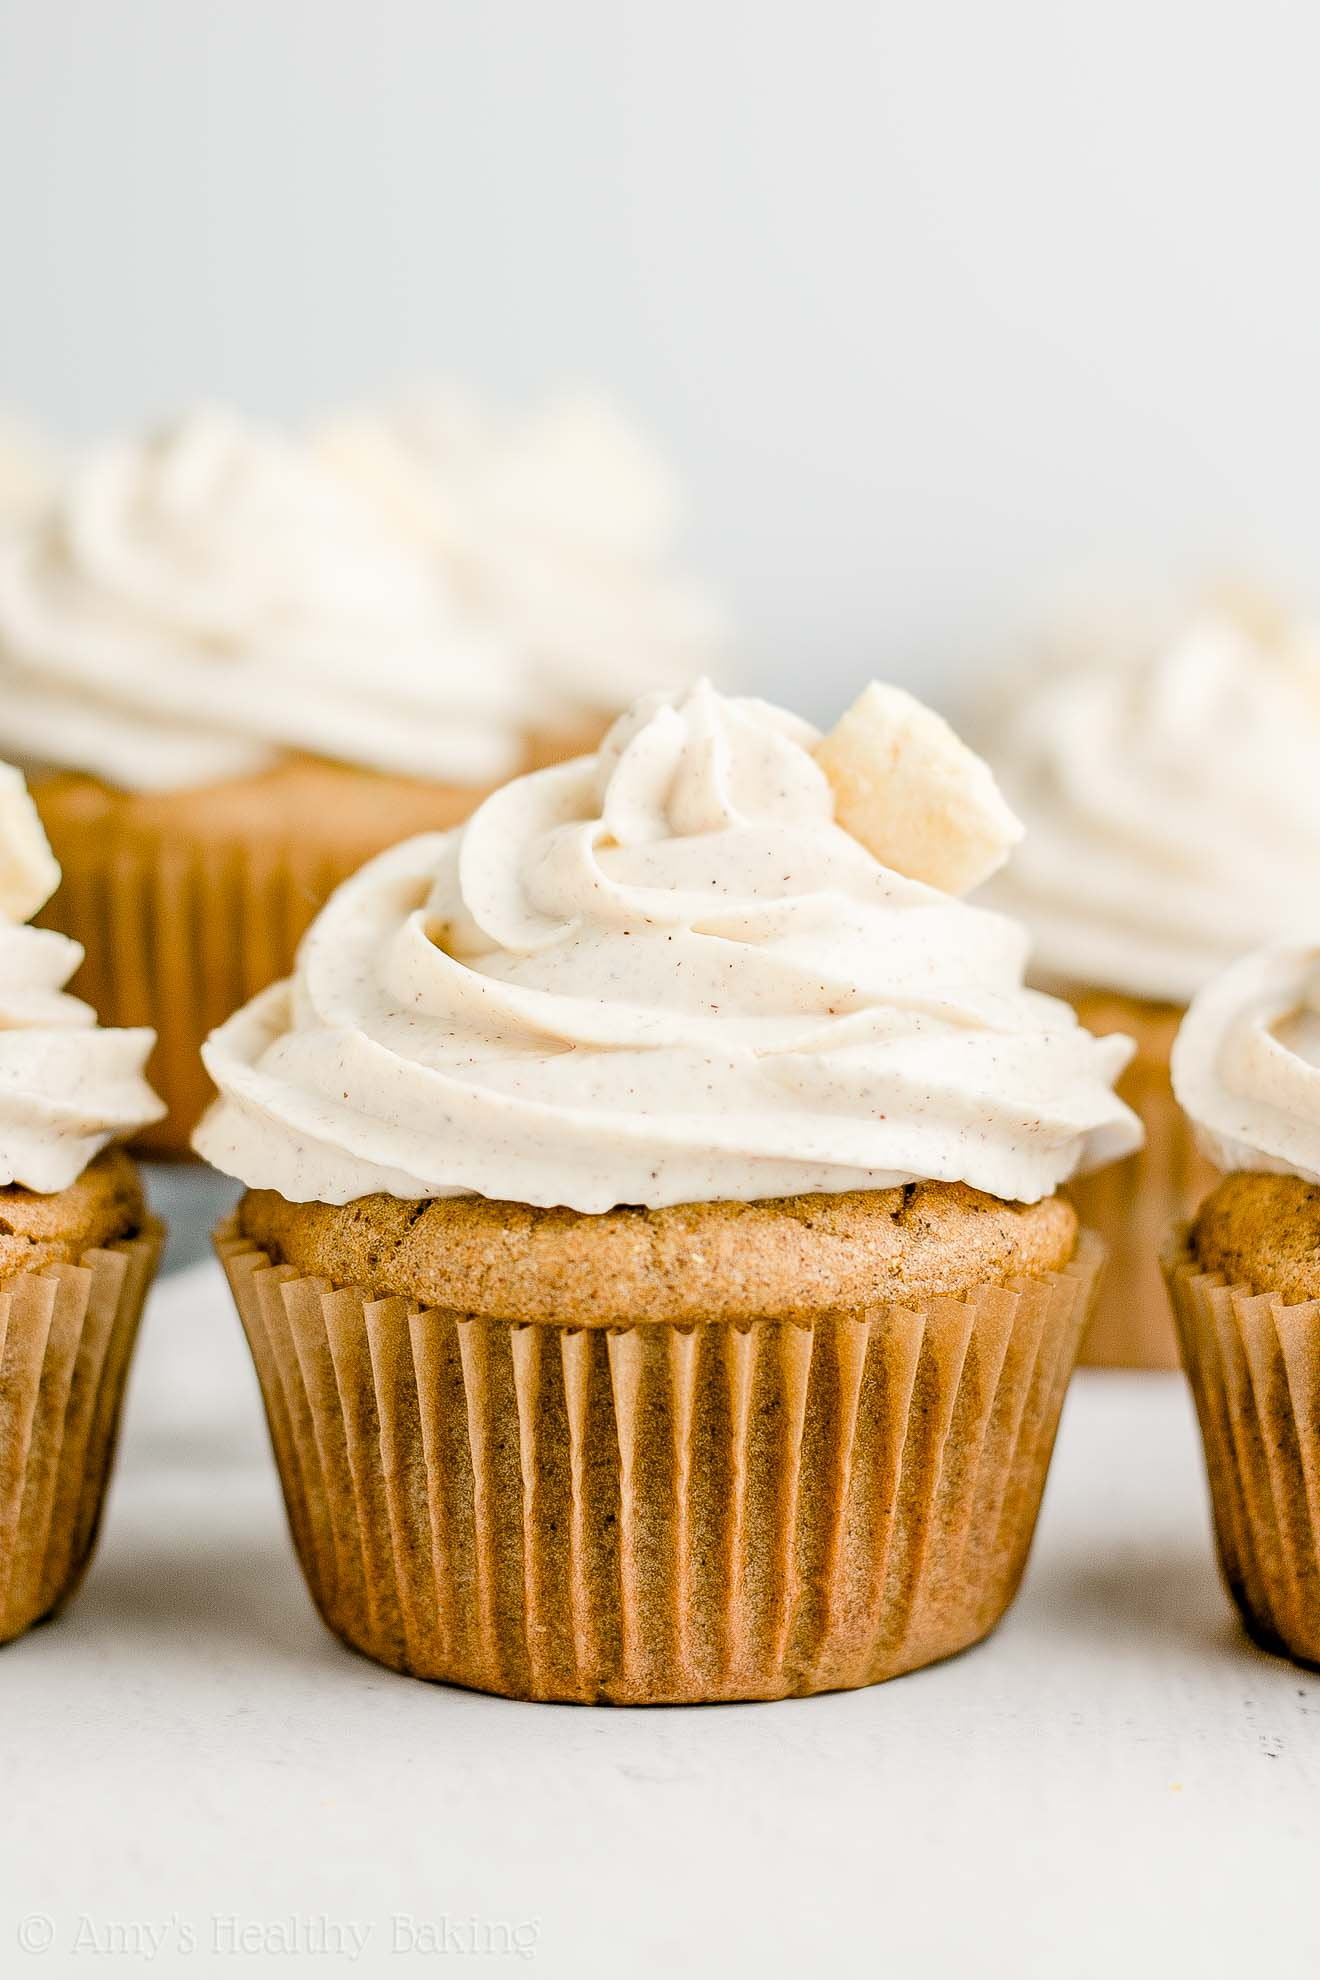 Best Healthy Moist Cinnamon Apple Cupcakes with Cinnamon Frosting